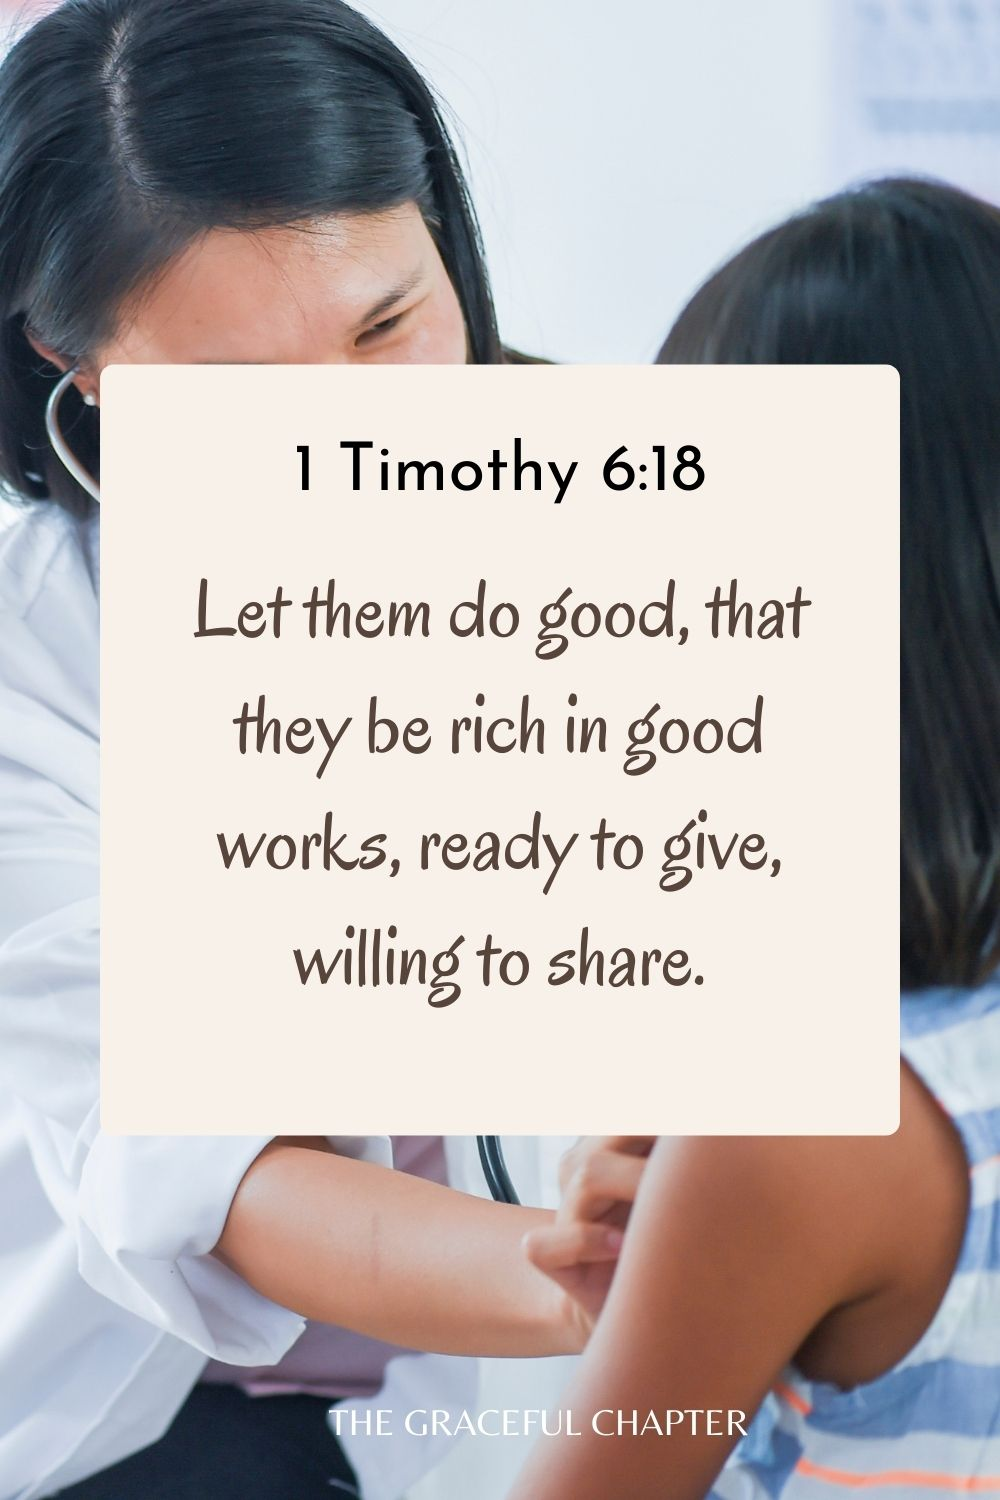 Let them do good, that they be rich in good works, ready to give, willing to share. 1 Timothy 6:18